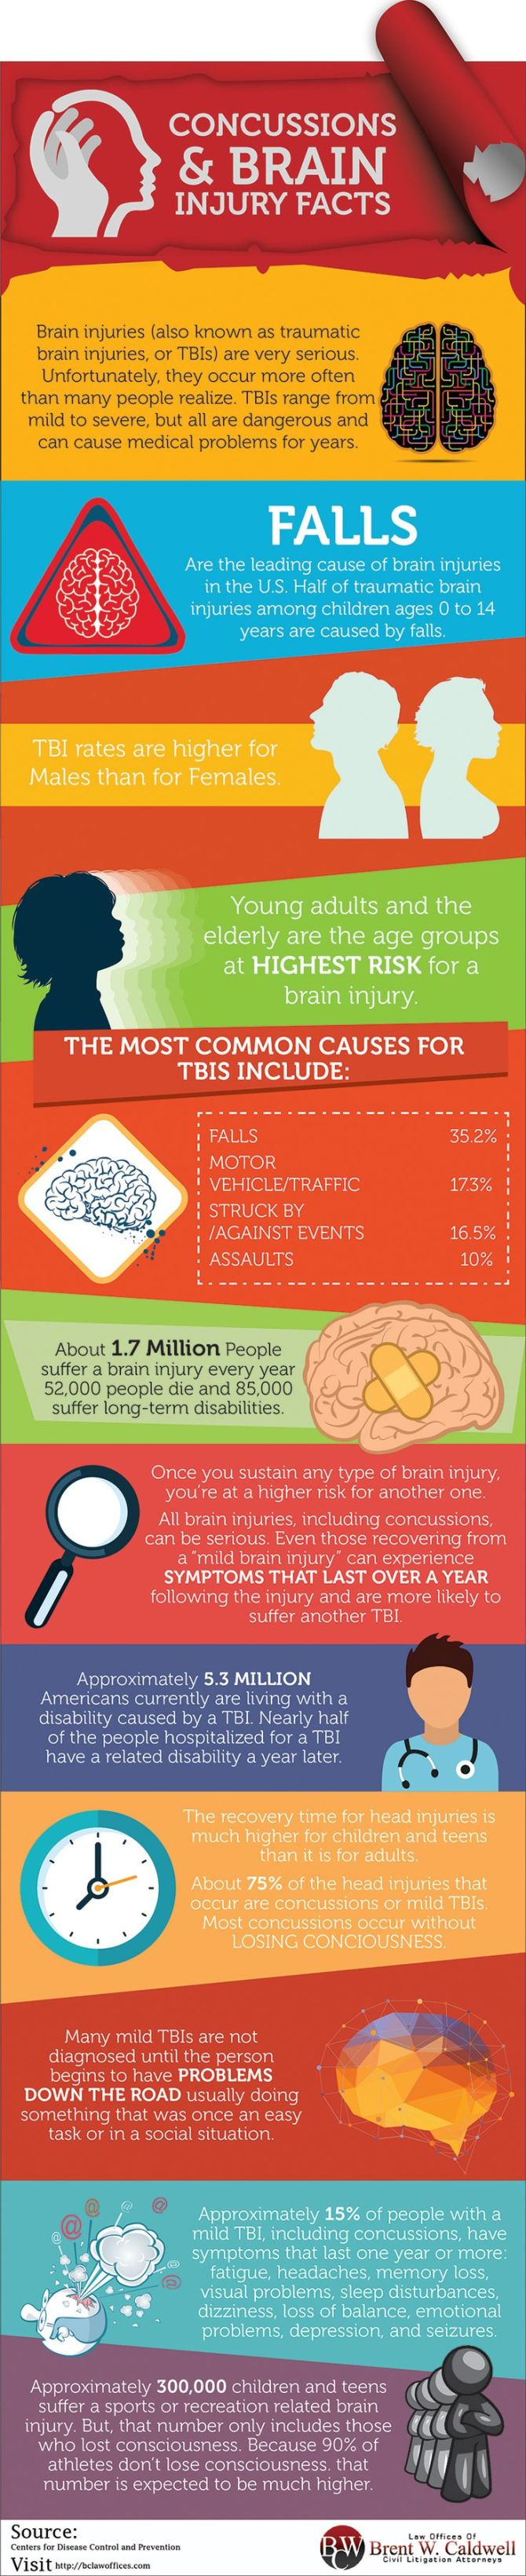 Concussions and Brain Injury Facts: